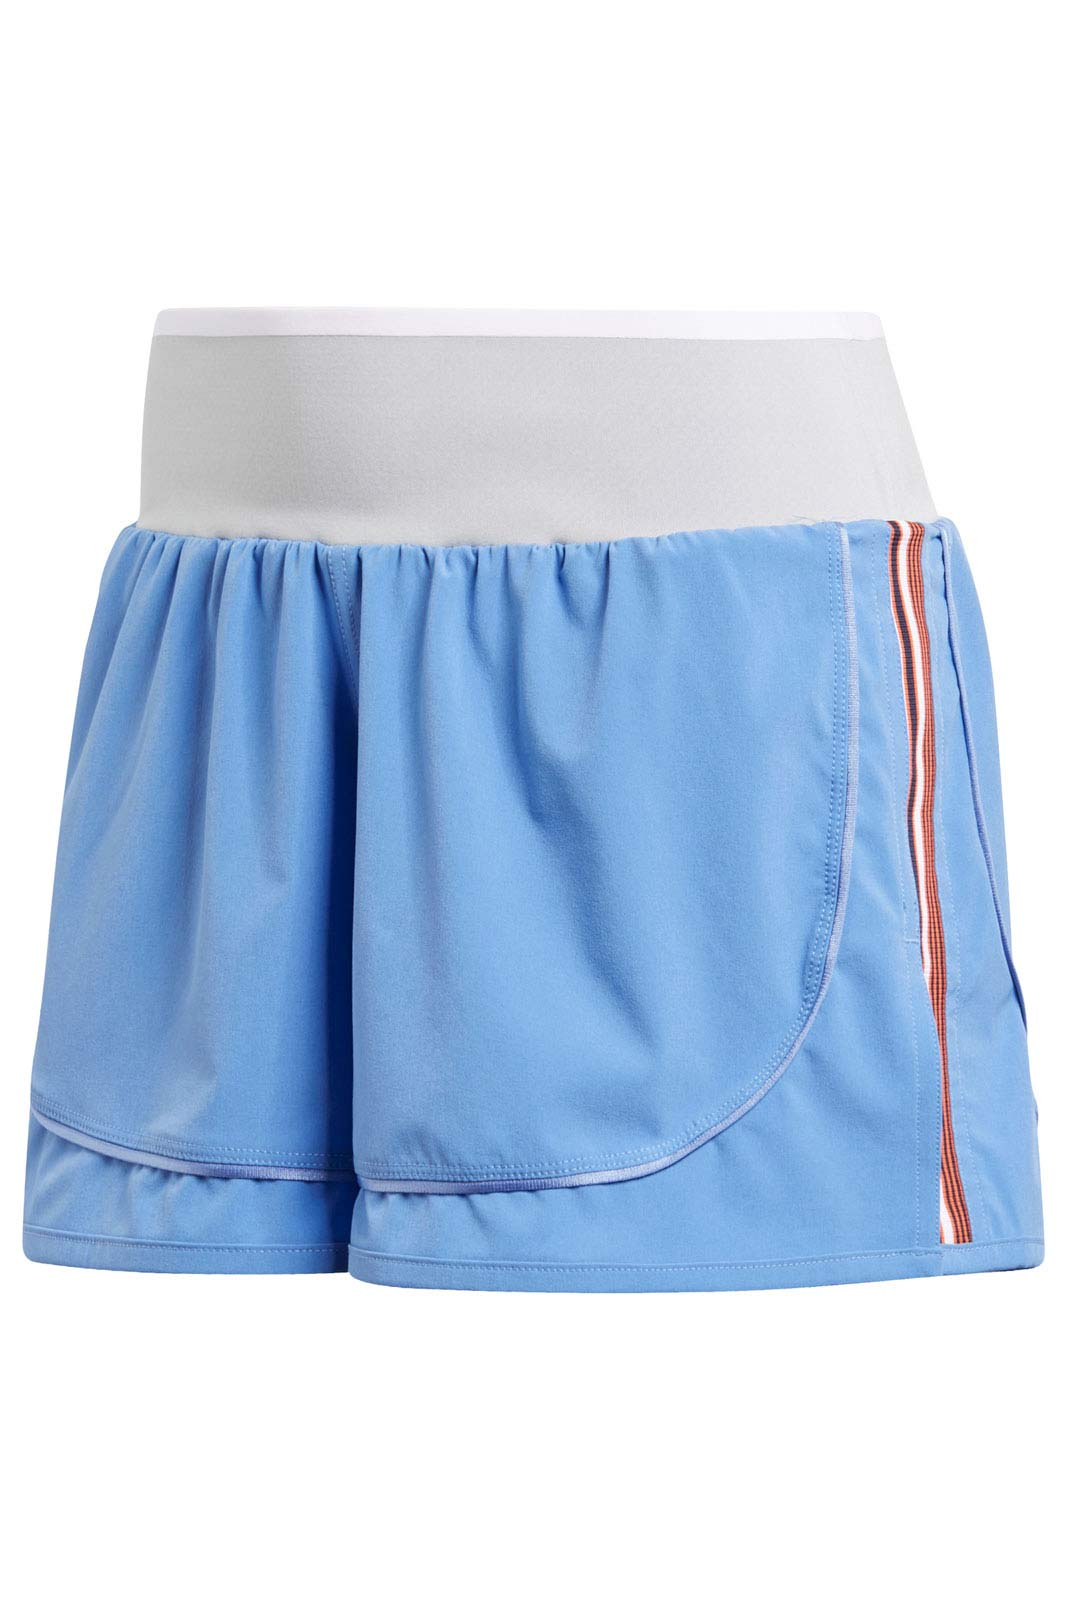 adidas X Stella McCartney Train HIIT Short - Storm Blue image 4 - The Sports Edit